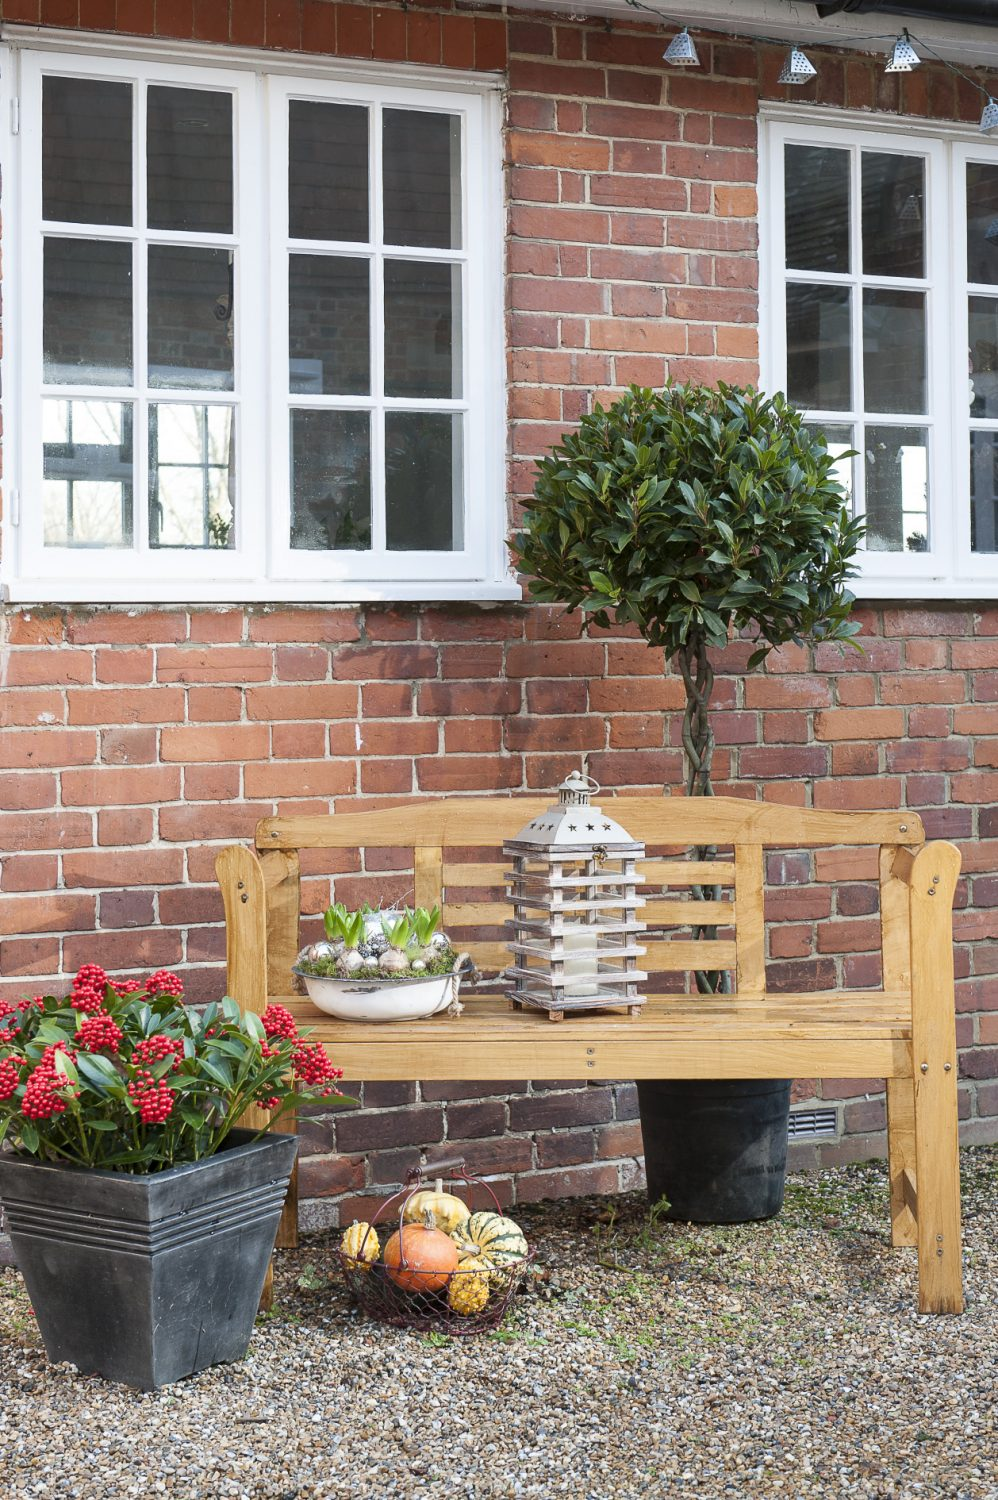 The shared courtyard is a lovely sheltered space in which to relax